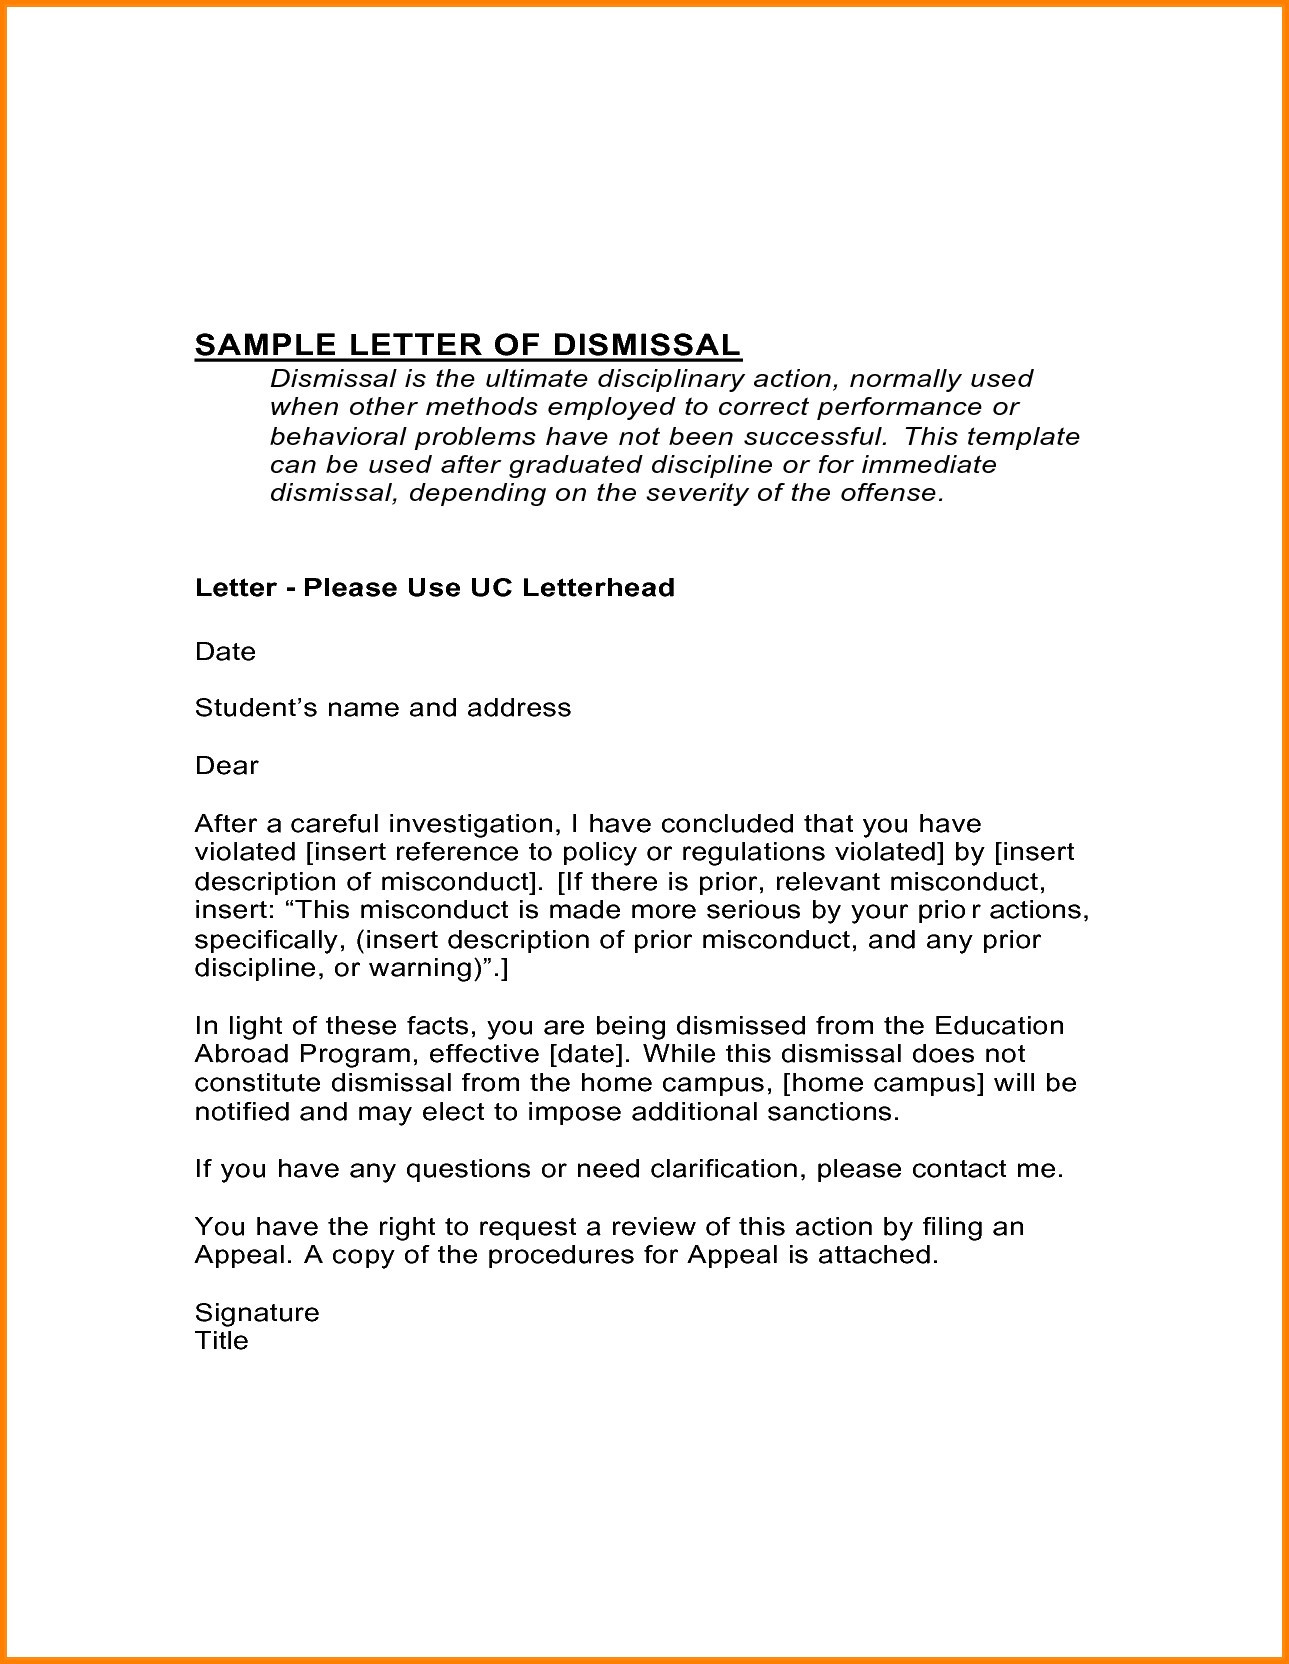 Dismissal Letter Template - Academic Probation Letter Template Personalinjurylovete